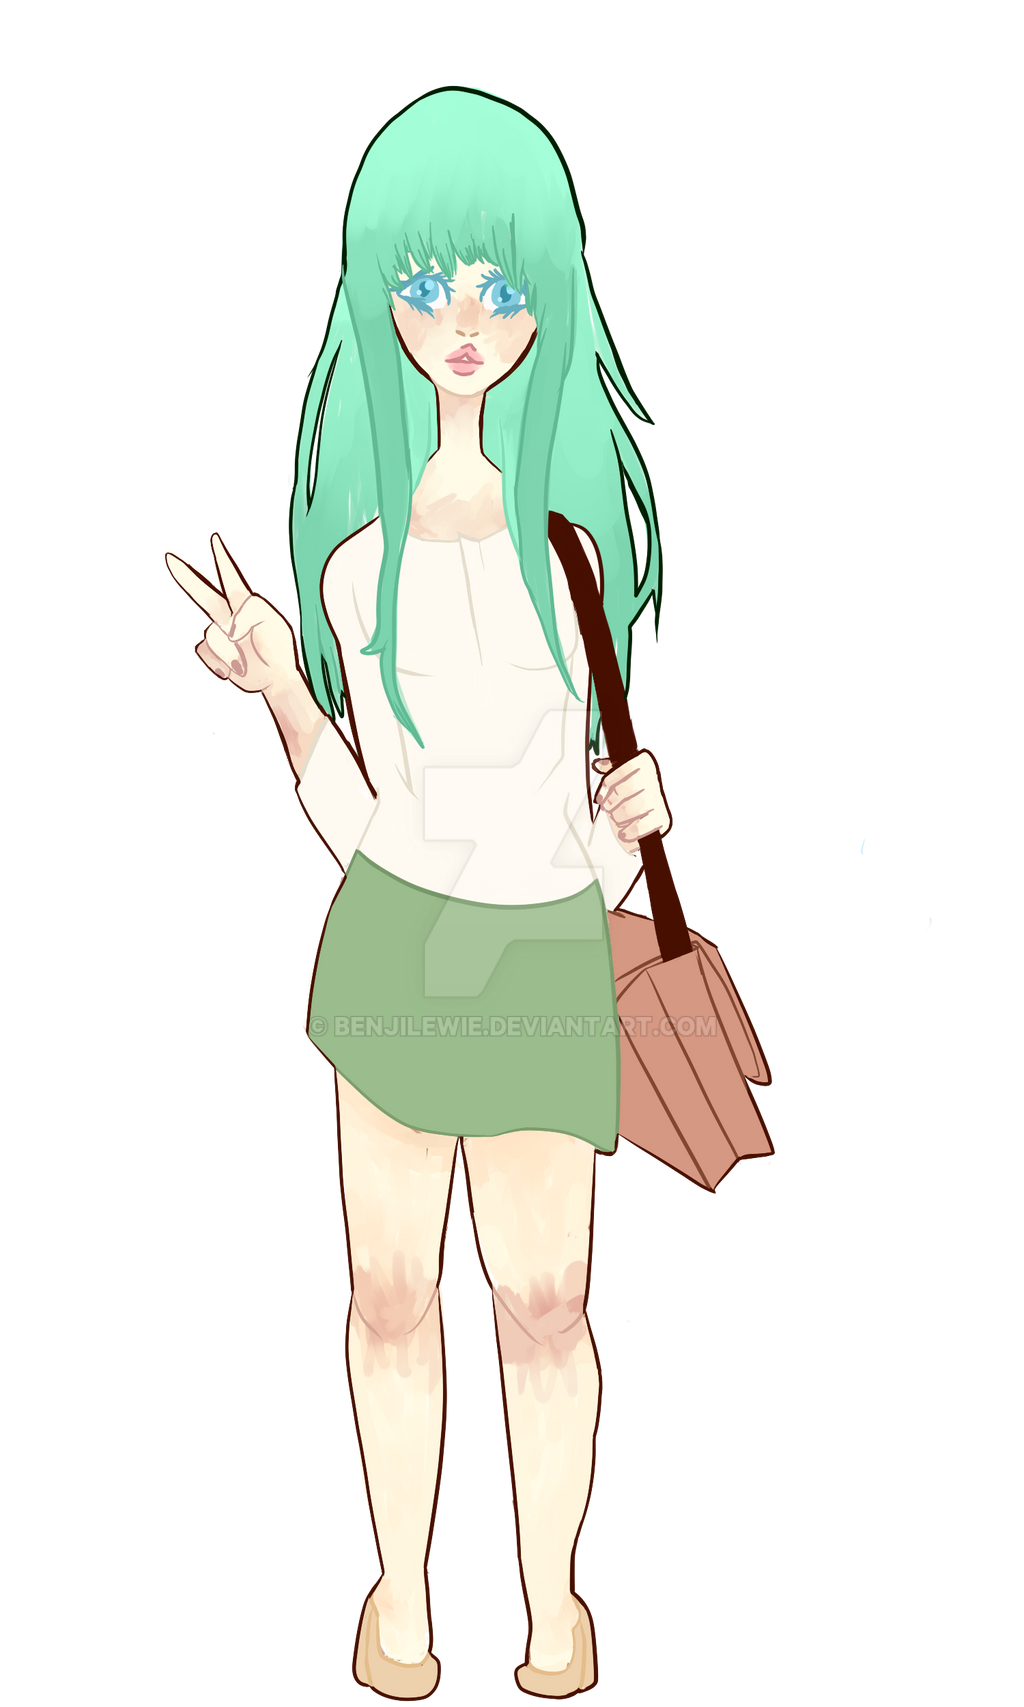 WIP: Green Haired Girl by Benjilewie